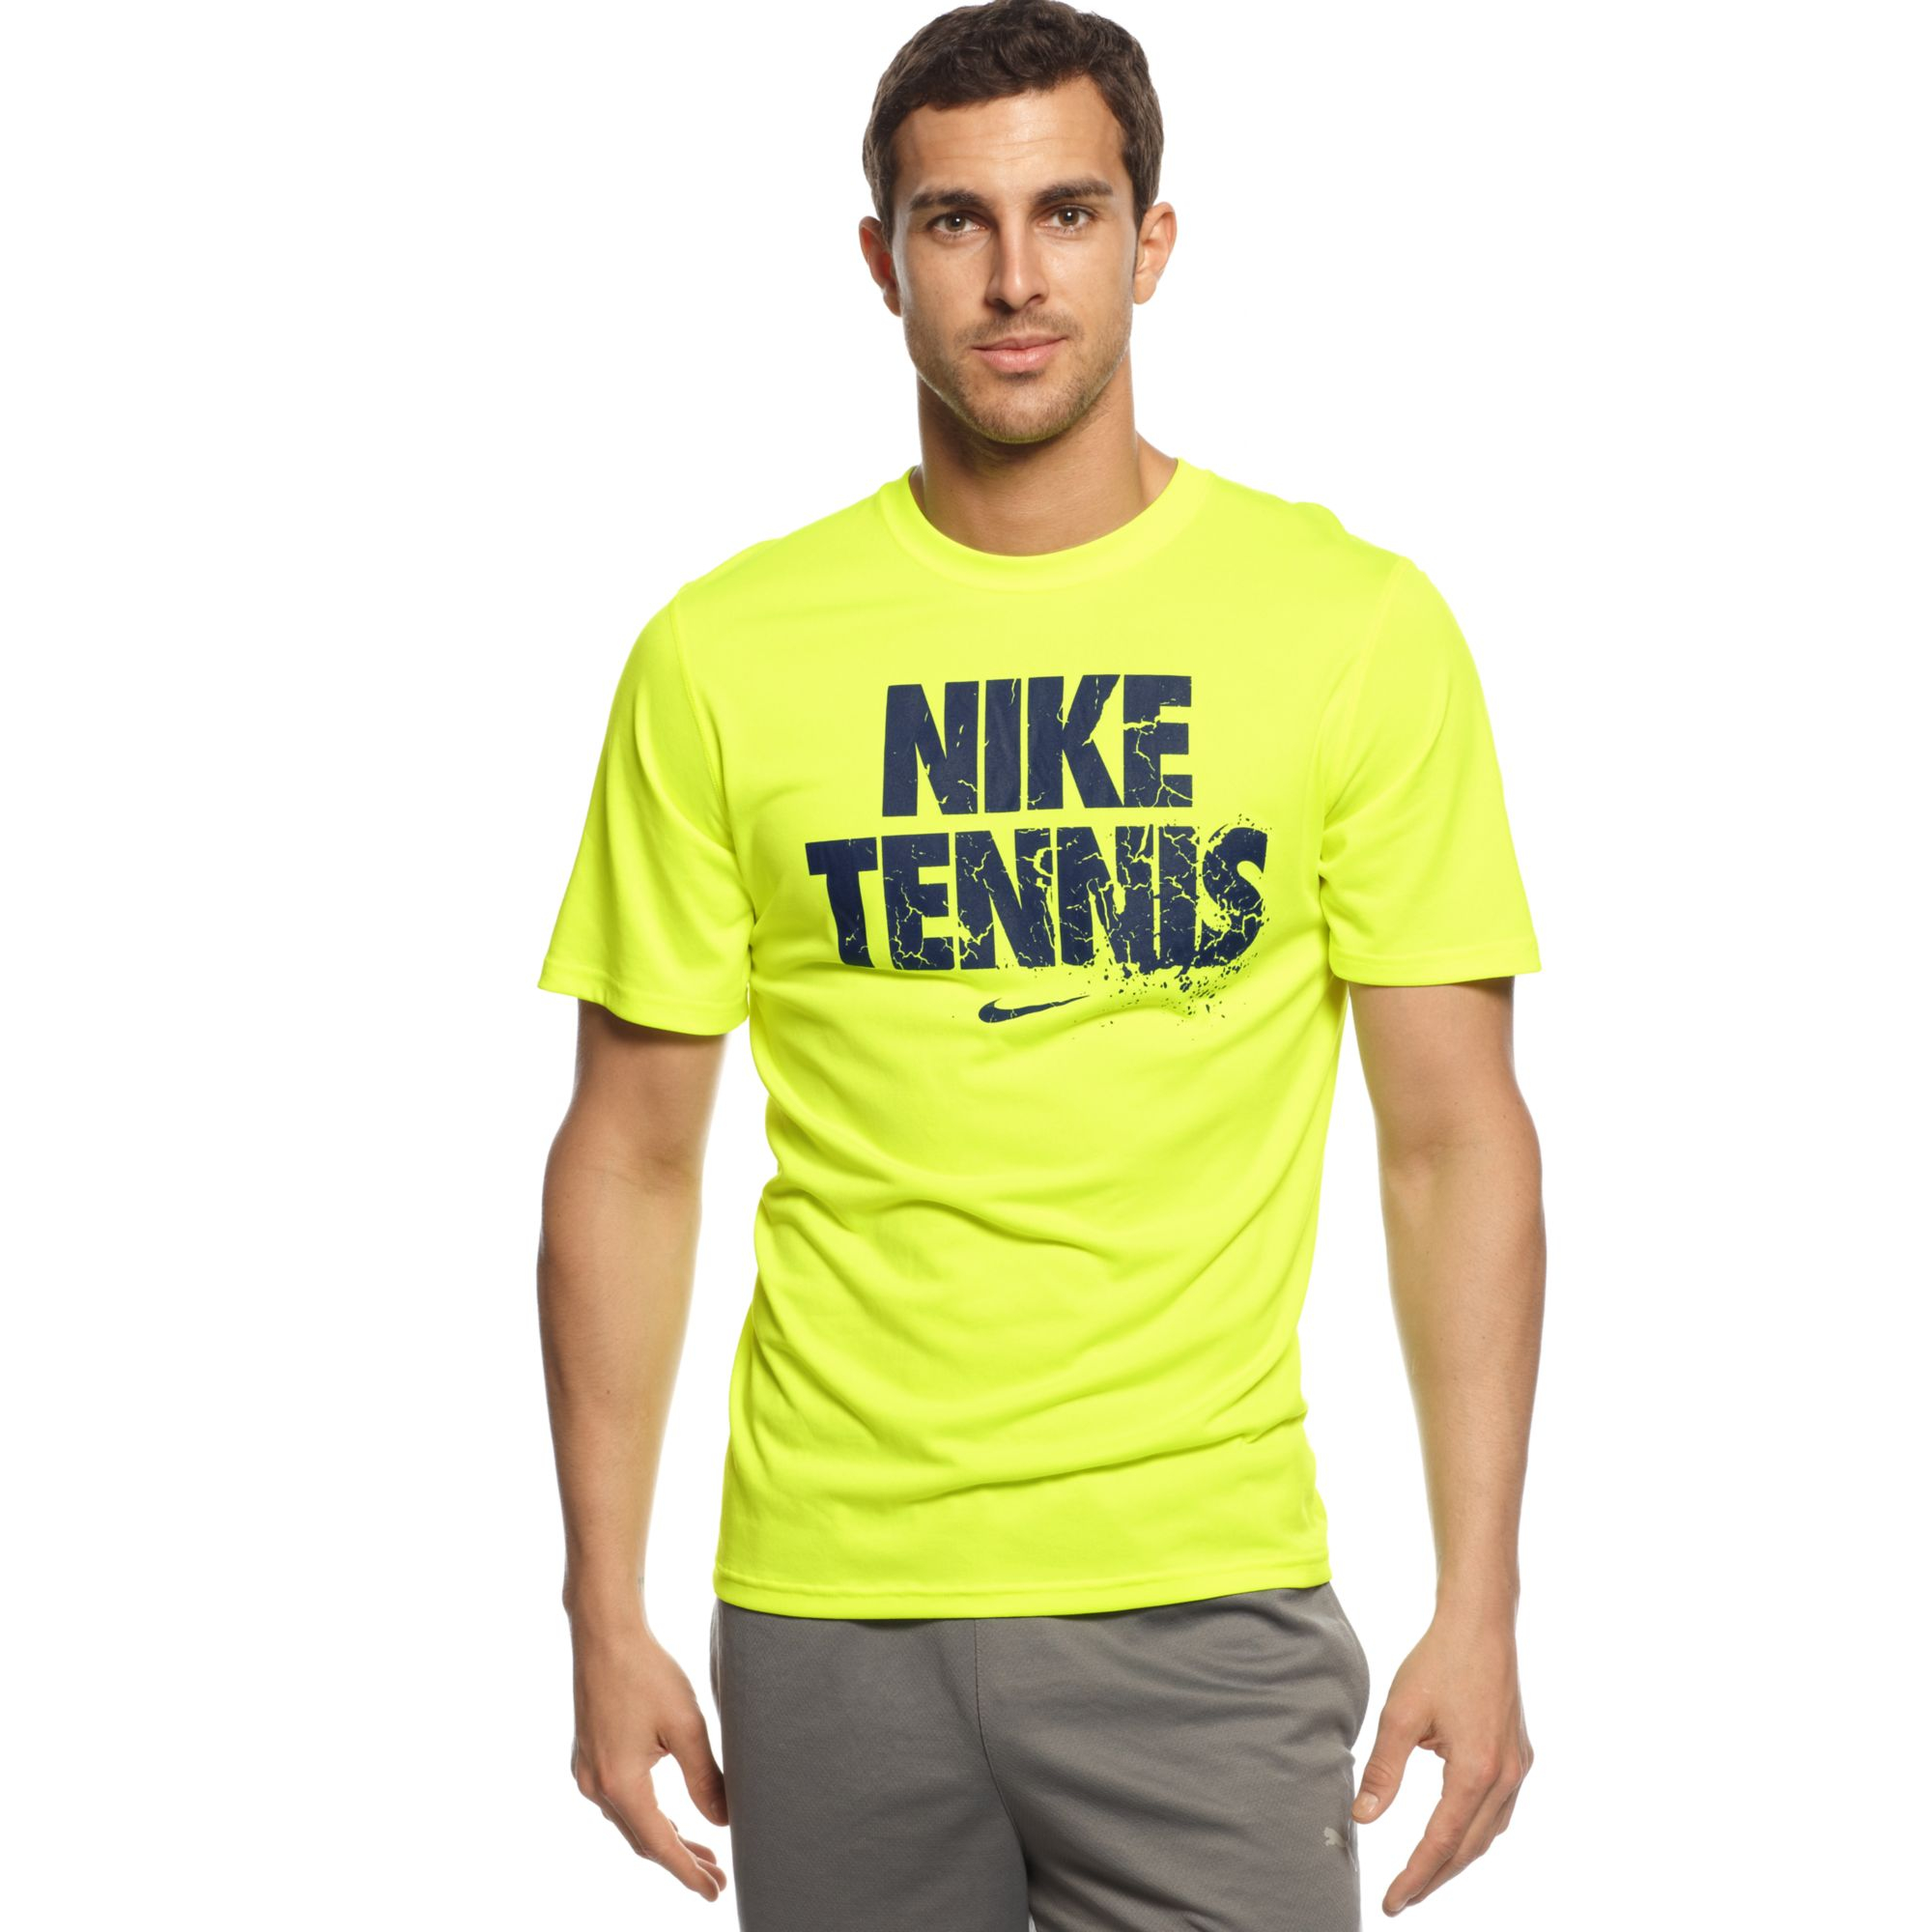 nike tennis read tshirt in yellow for men lyst. Black Bedroom Furniture Sets. Home Design Ideas